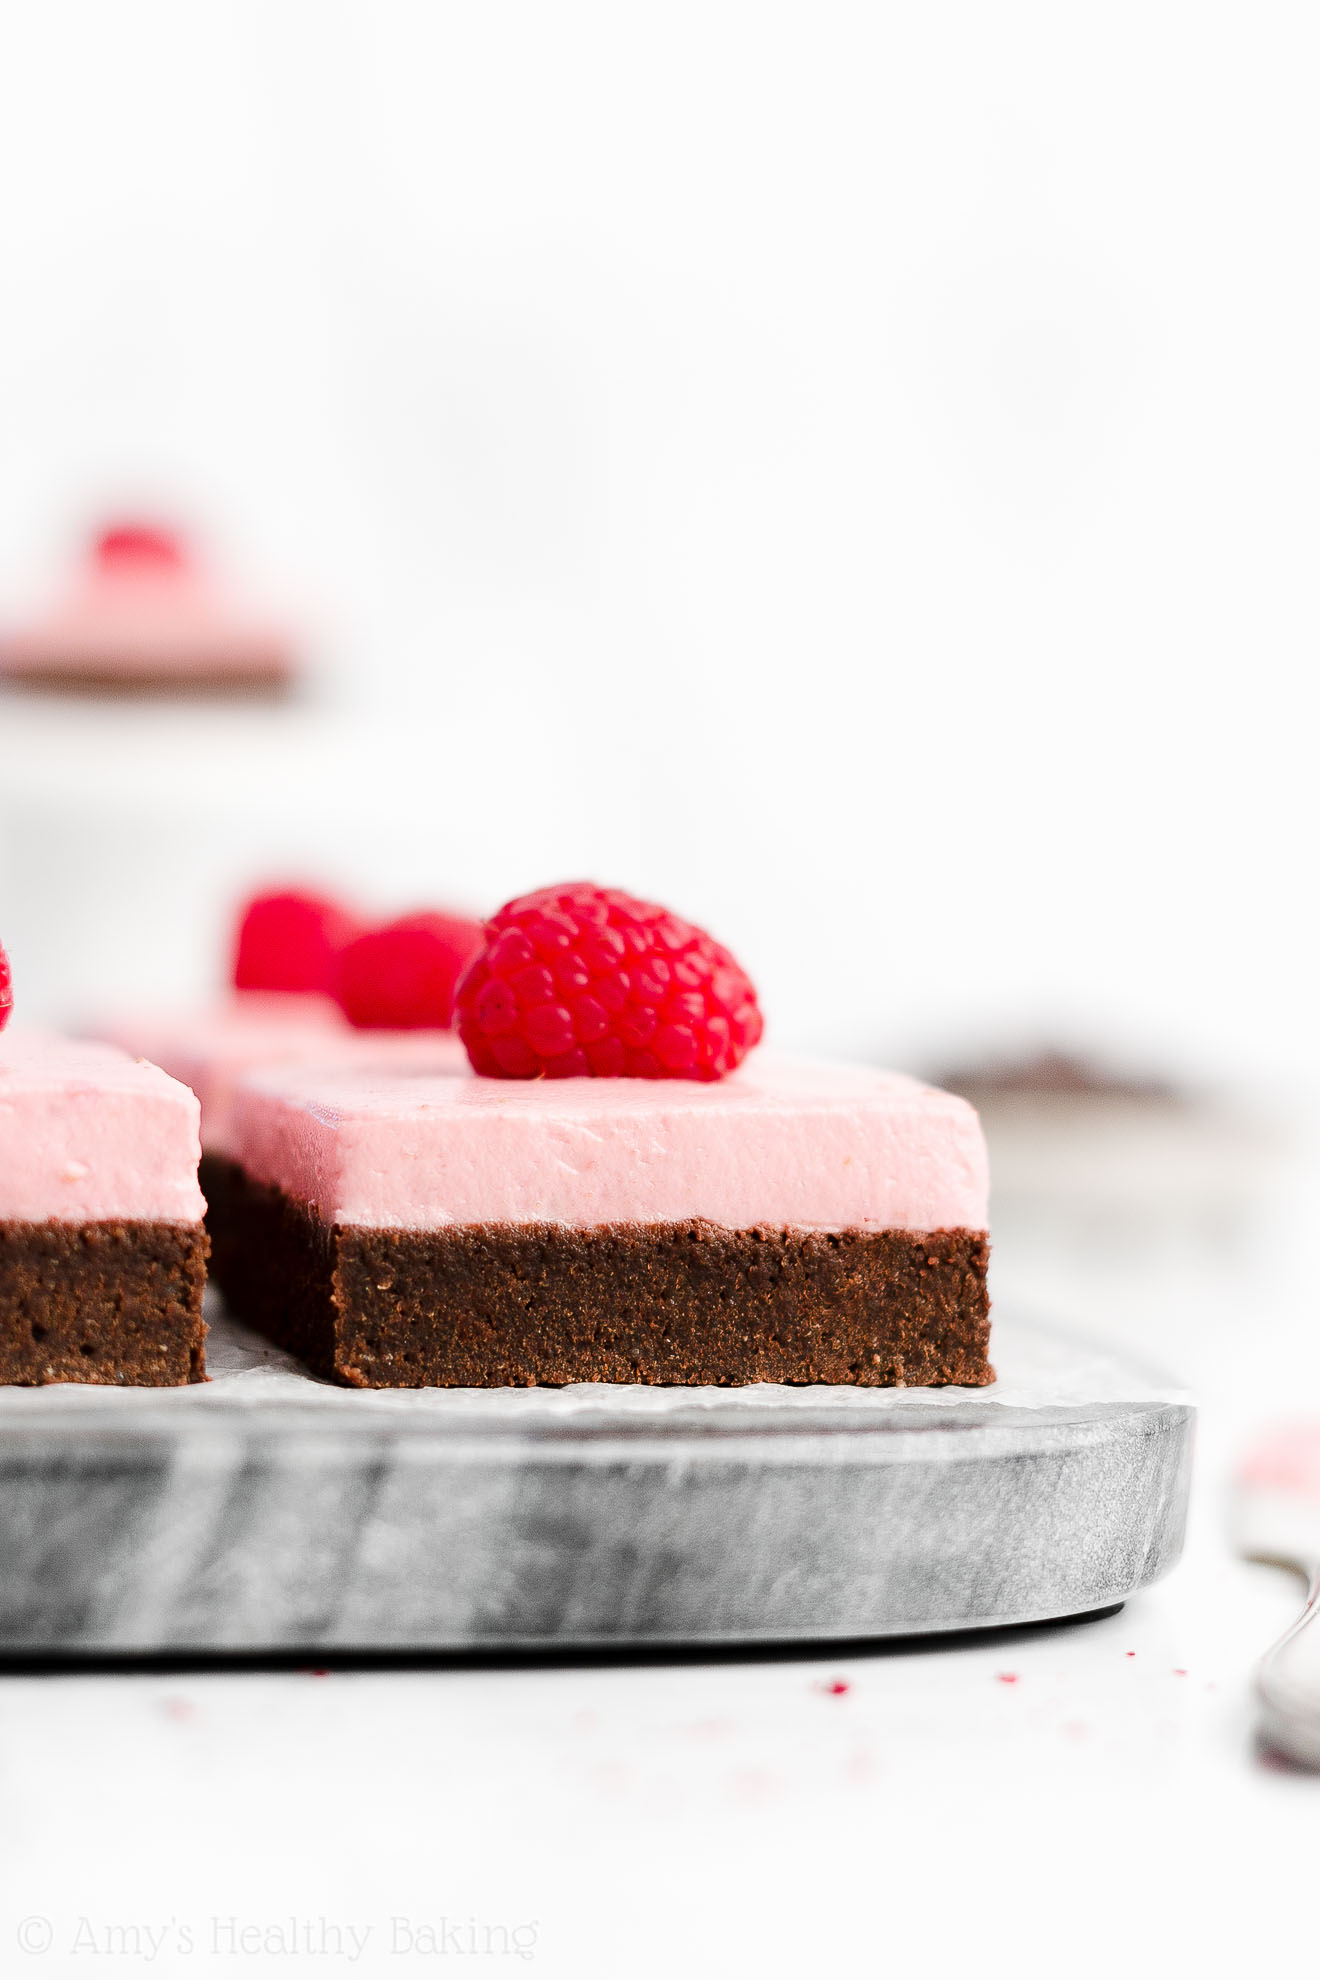 Easy Healthy Clean Low Fat Fudgy Dark Chocolate Brownies + Low Fat Raspberry Frosting With Freeze Dried Raspberries